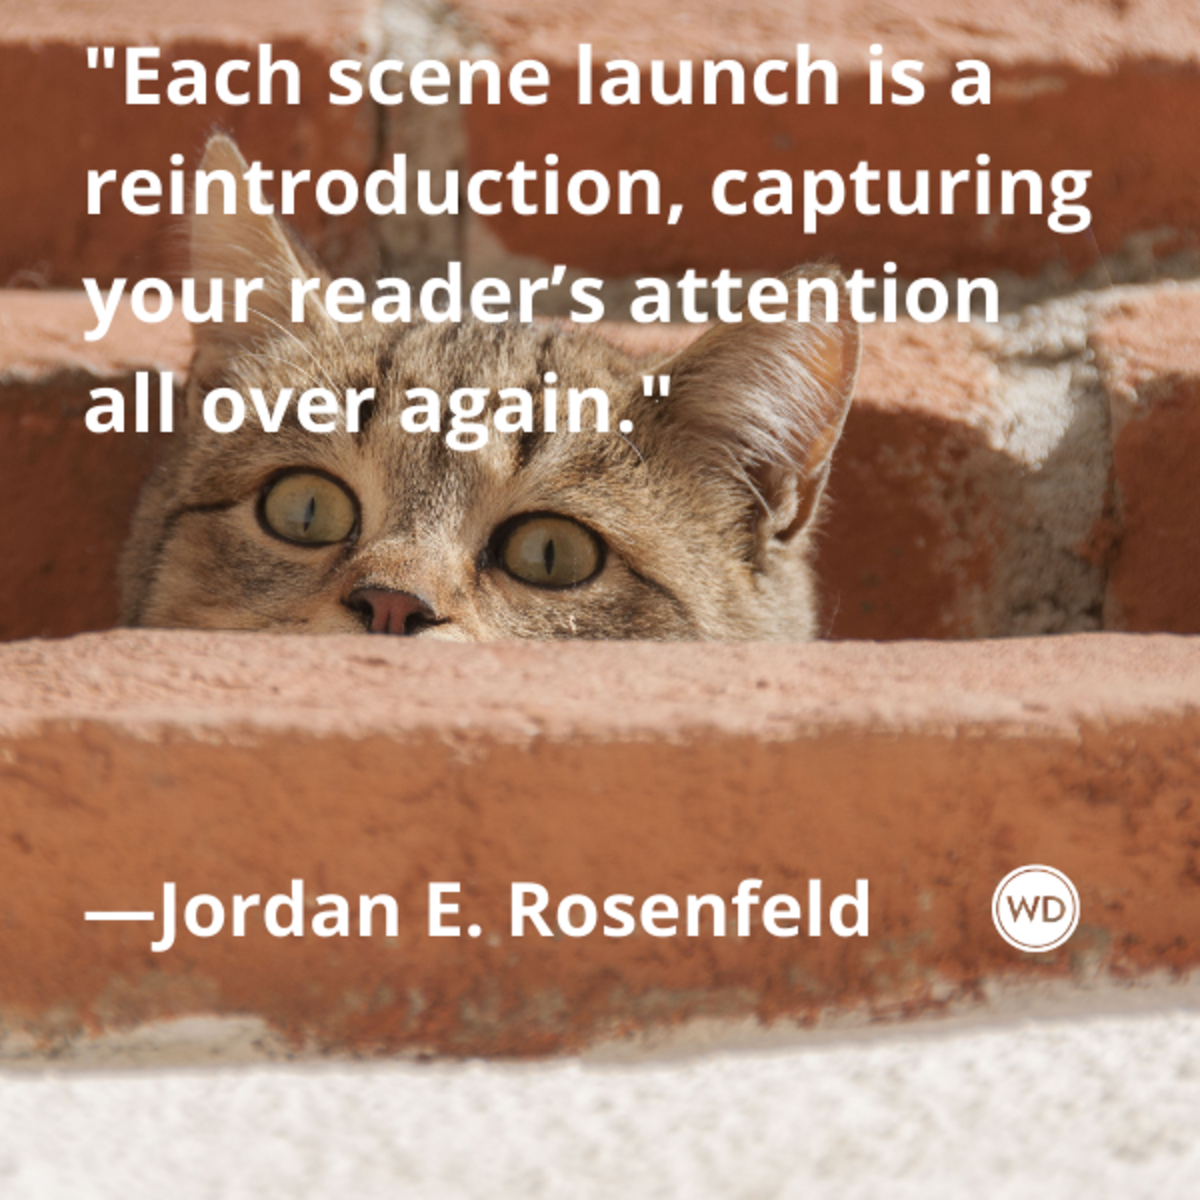 jordan_e_rosenfeld_quotes_each_scene_launch_is_a_reintroduction_capturing_your_readers_attention_all_over_again_nanotips_nanowrimo